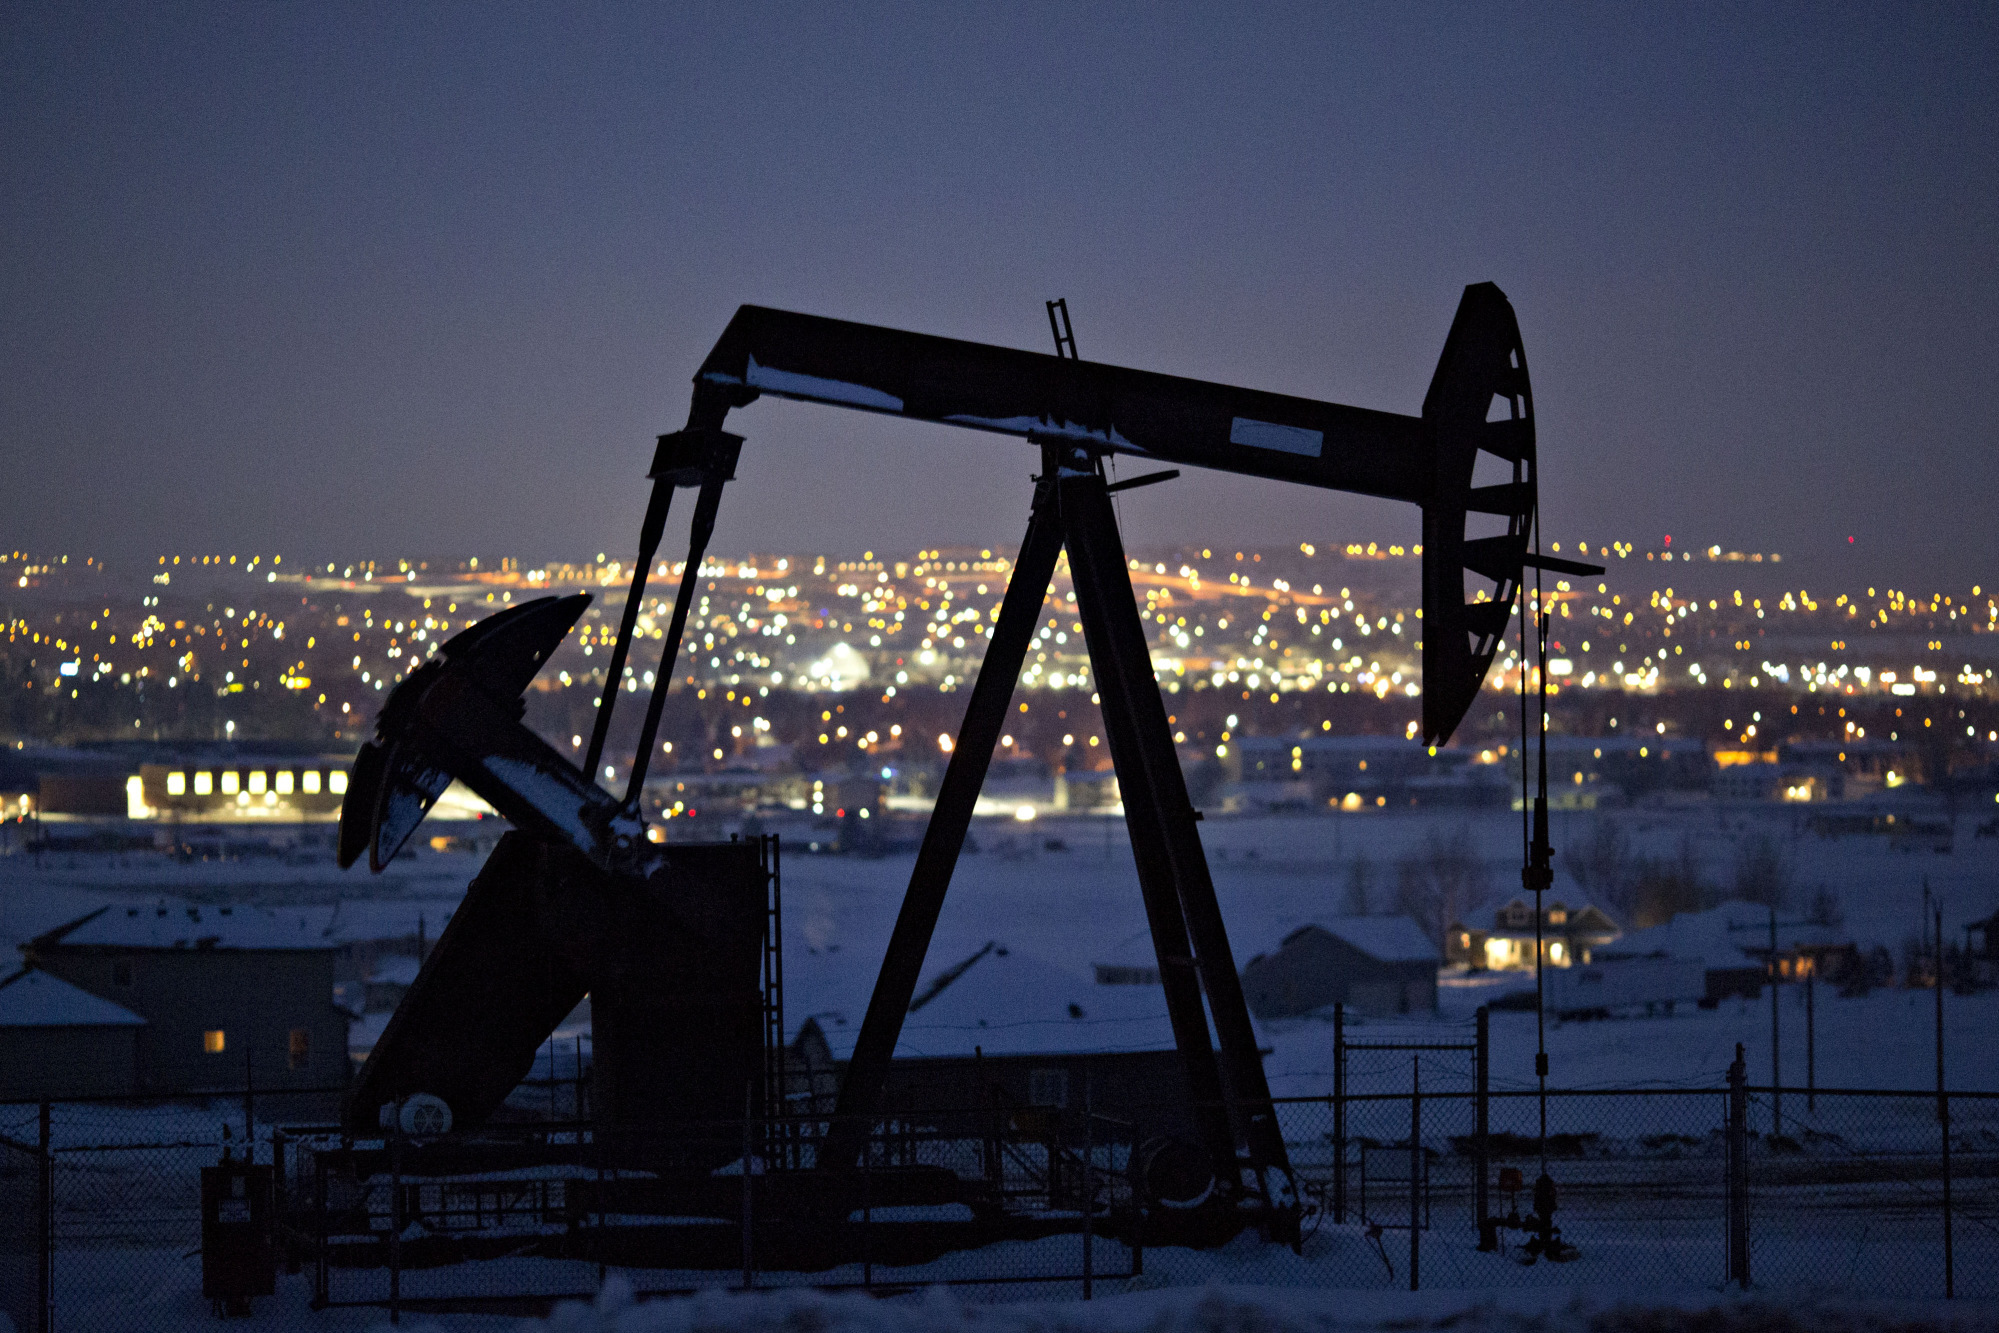 A pumpjack operates above an oil well at night in the Bakken Formation on the outskirts of Williston, North Dakota, U.S., on Thursday, March 8, 2018. Photographer: Daniel Acker/Bloomberg